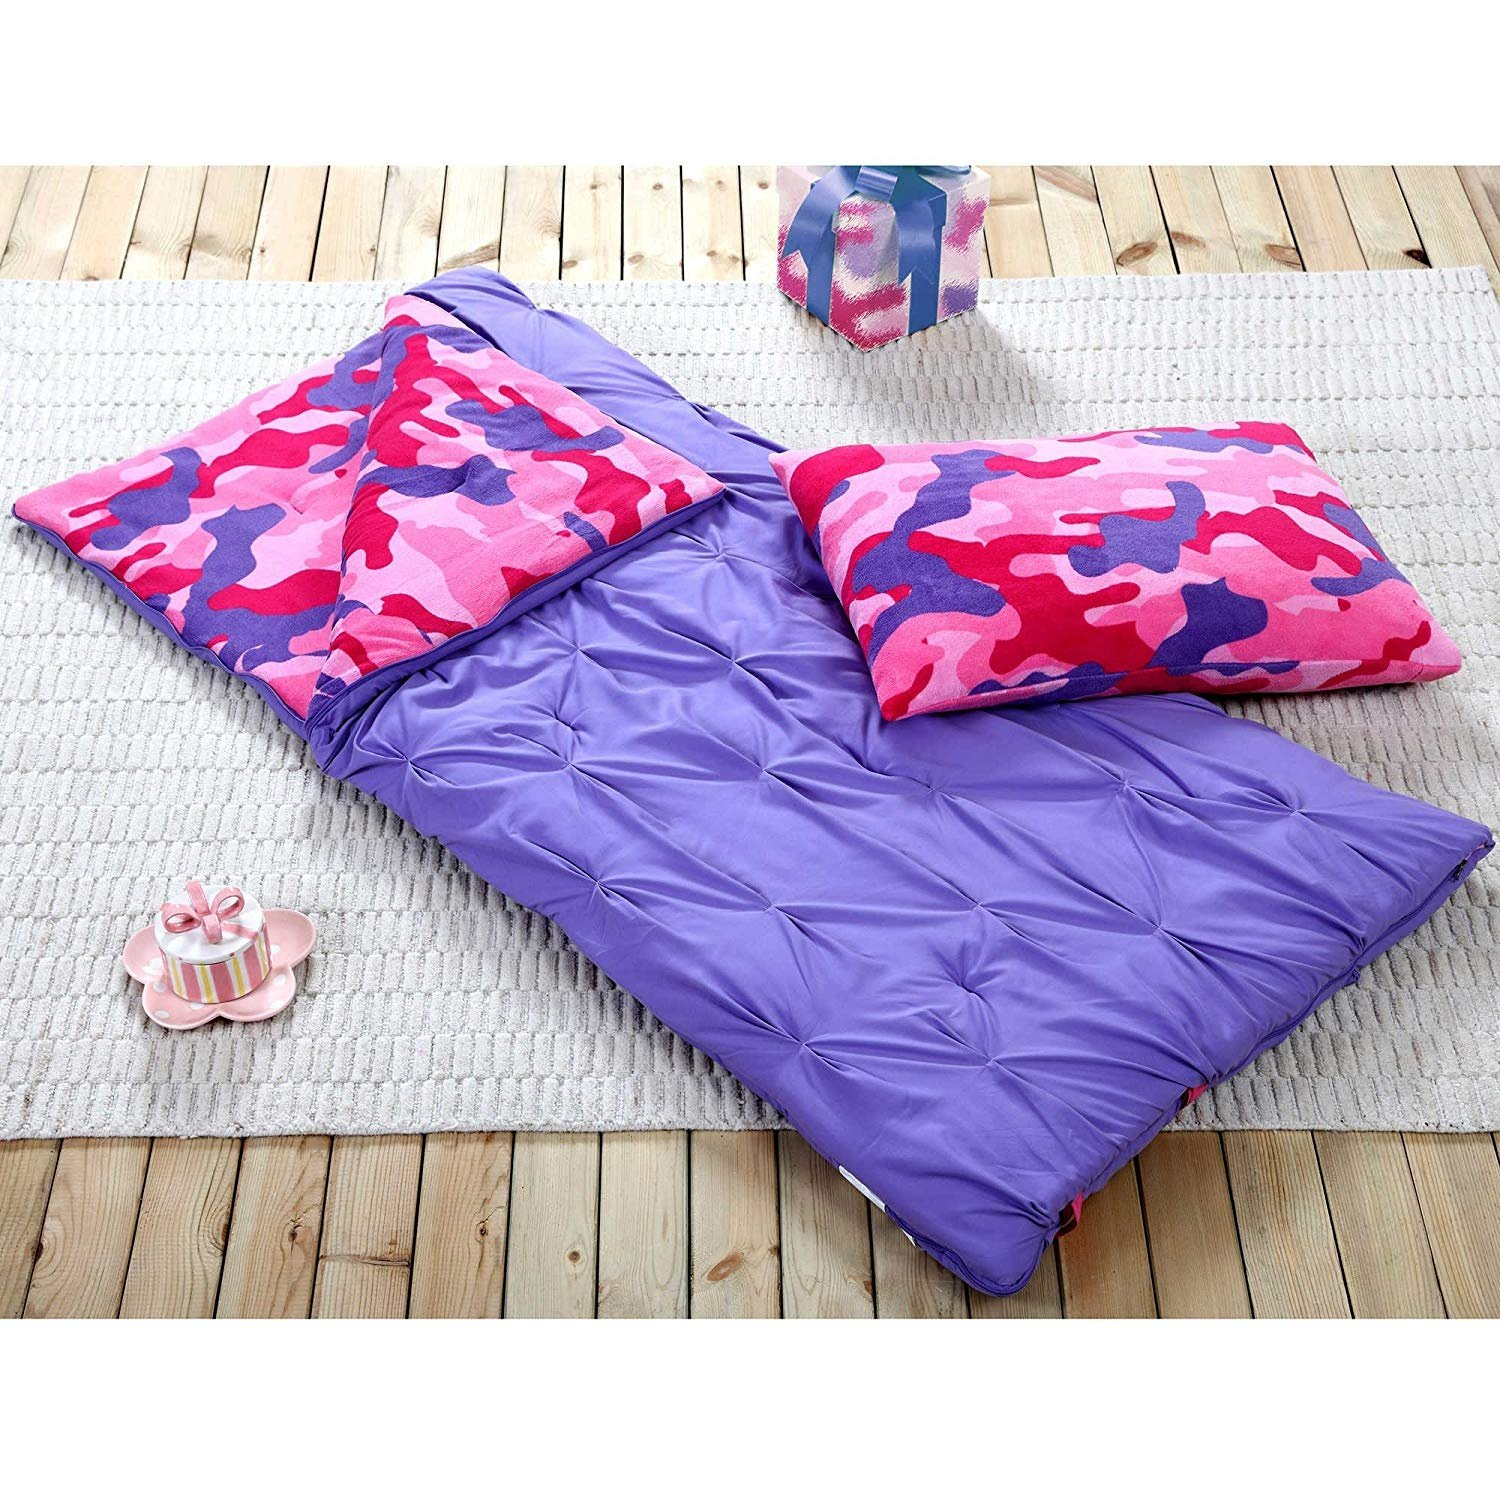 Blue Tie-Dye Indoor Outdoor Camping Youth Kids Girls Sleeping Bag and Pillow Cover